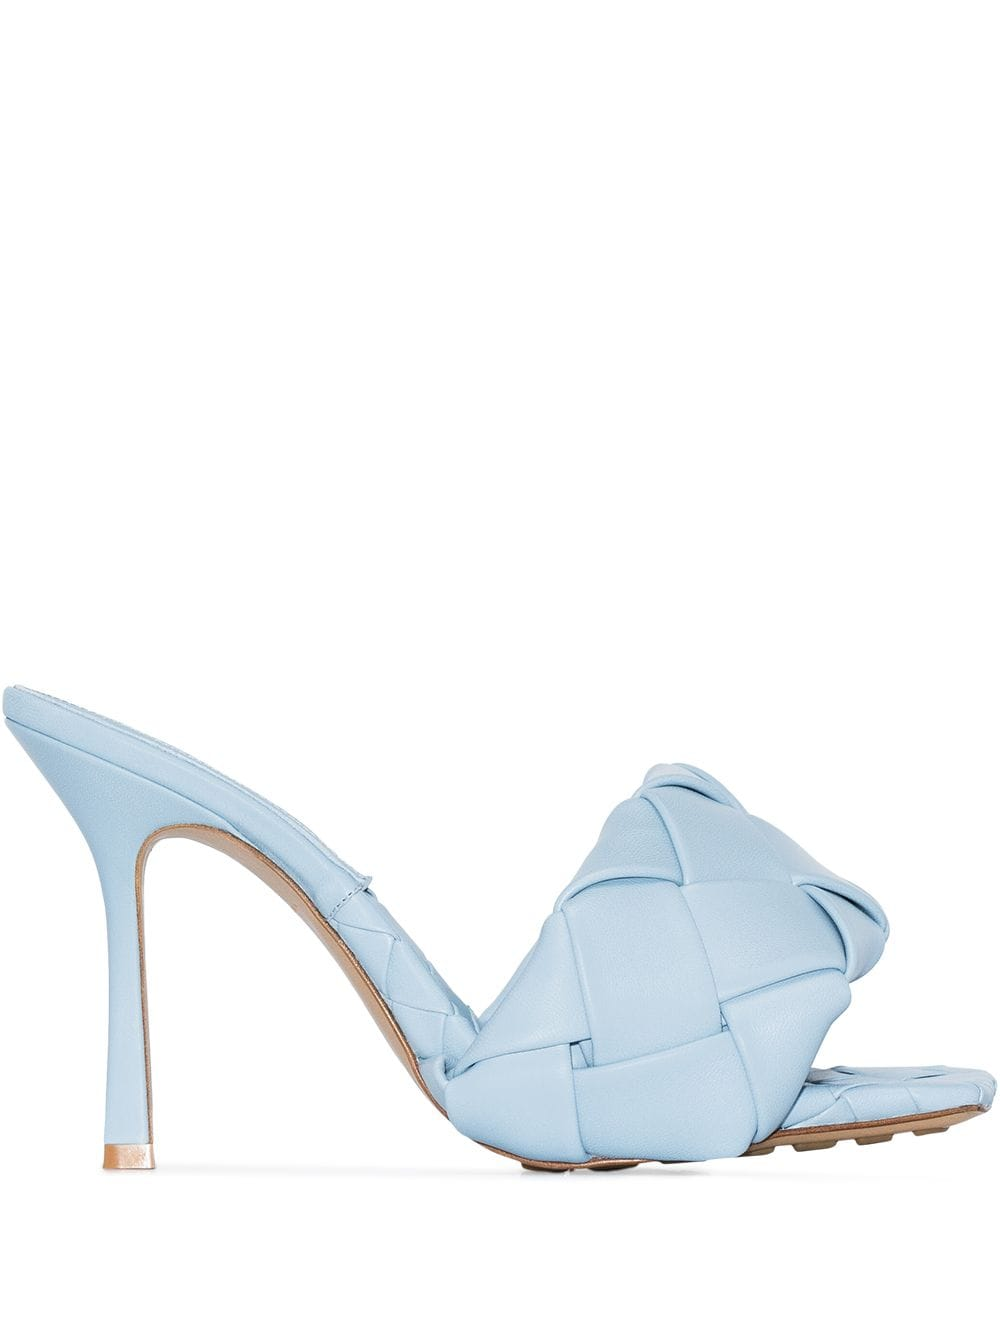 The Lido Sandal - Blue